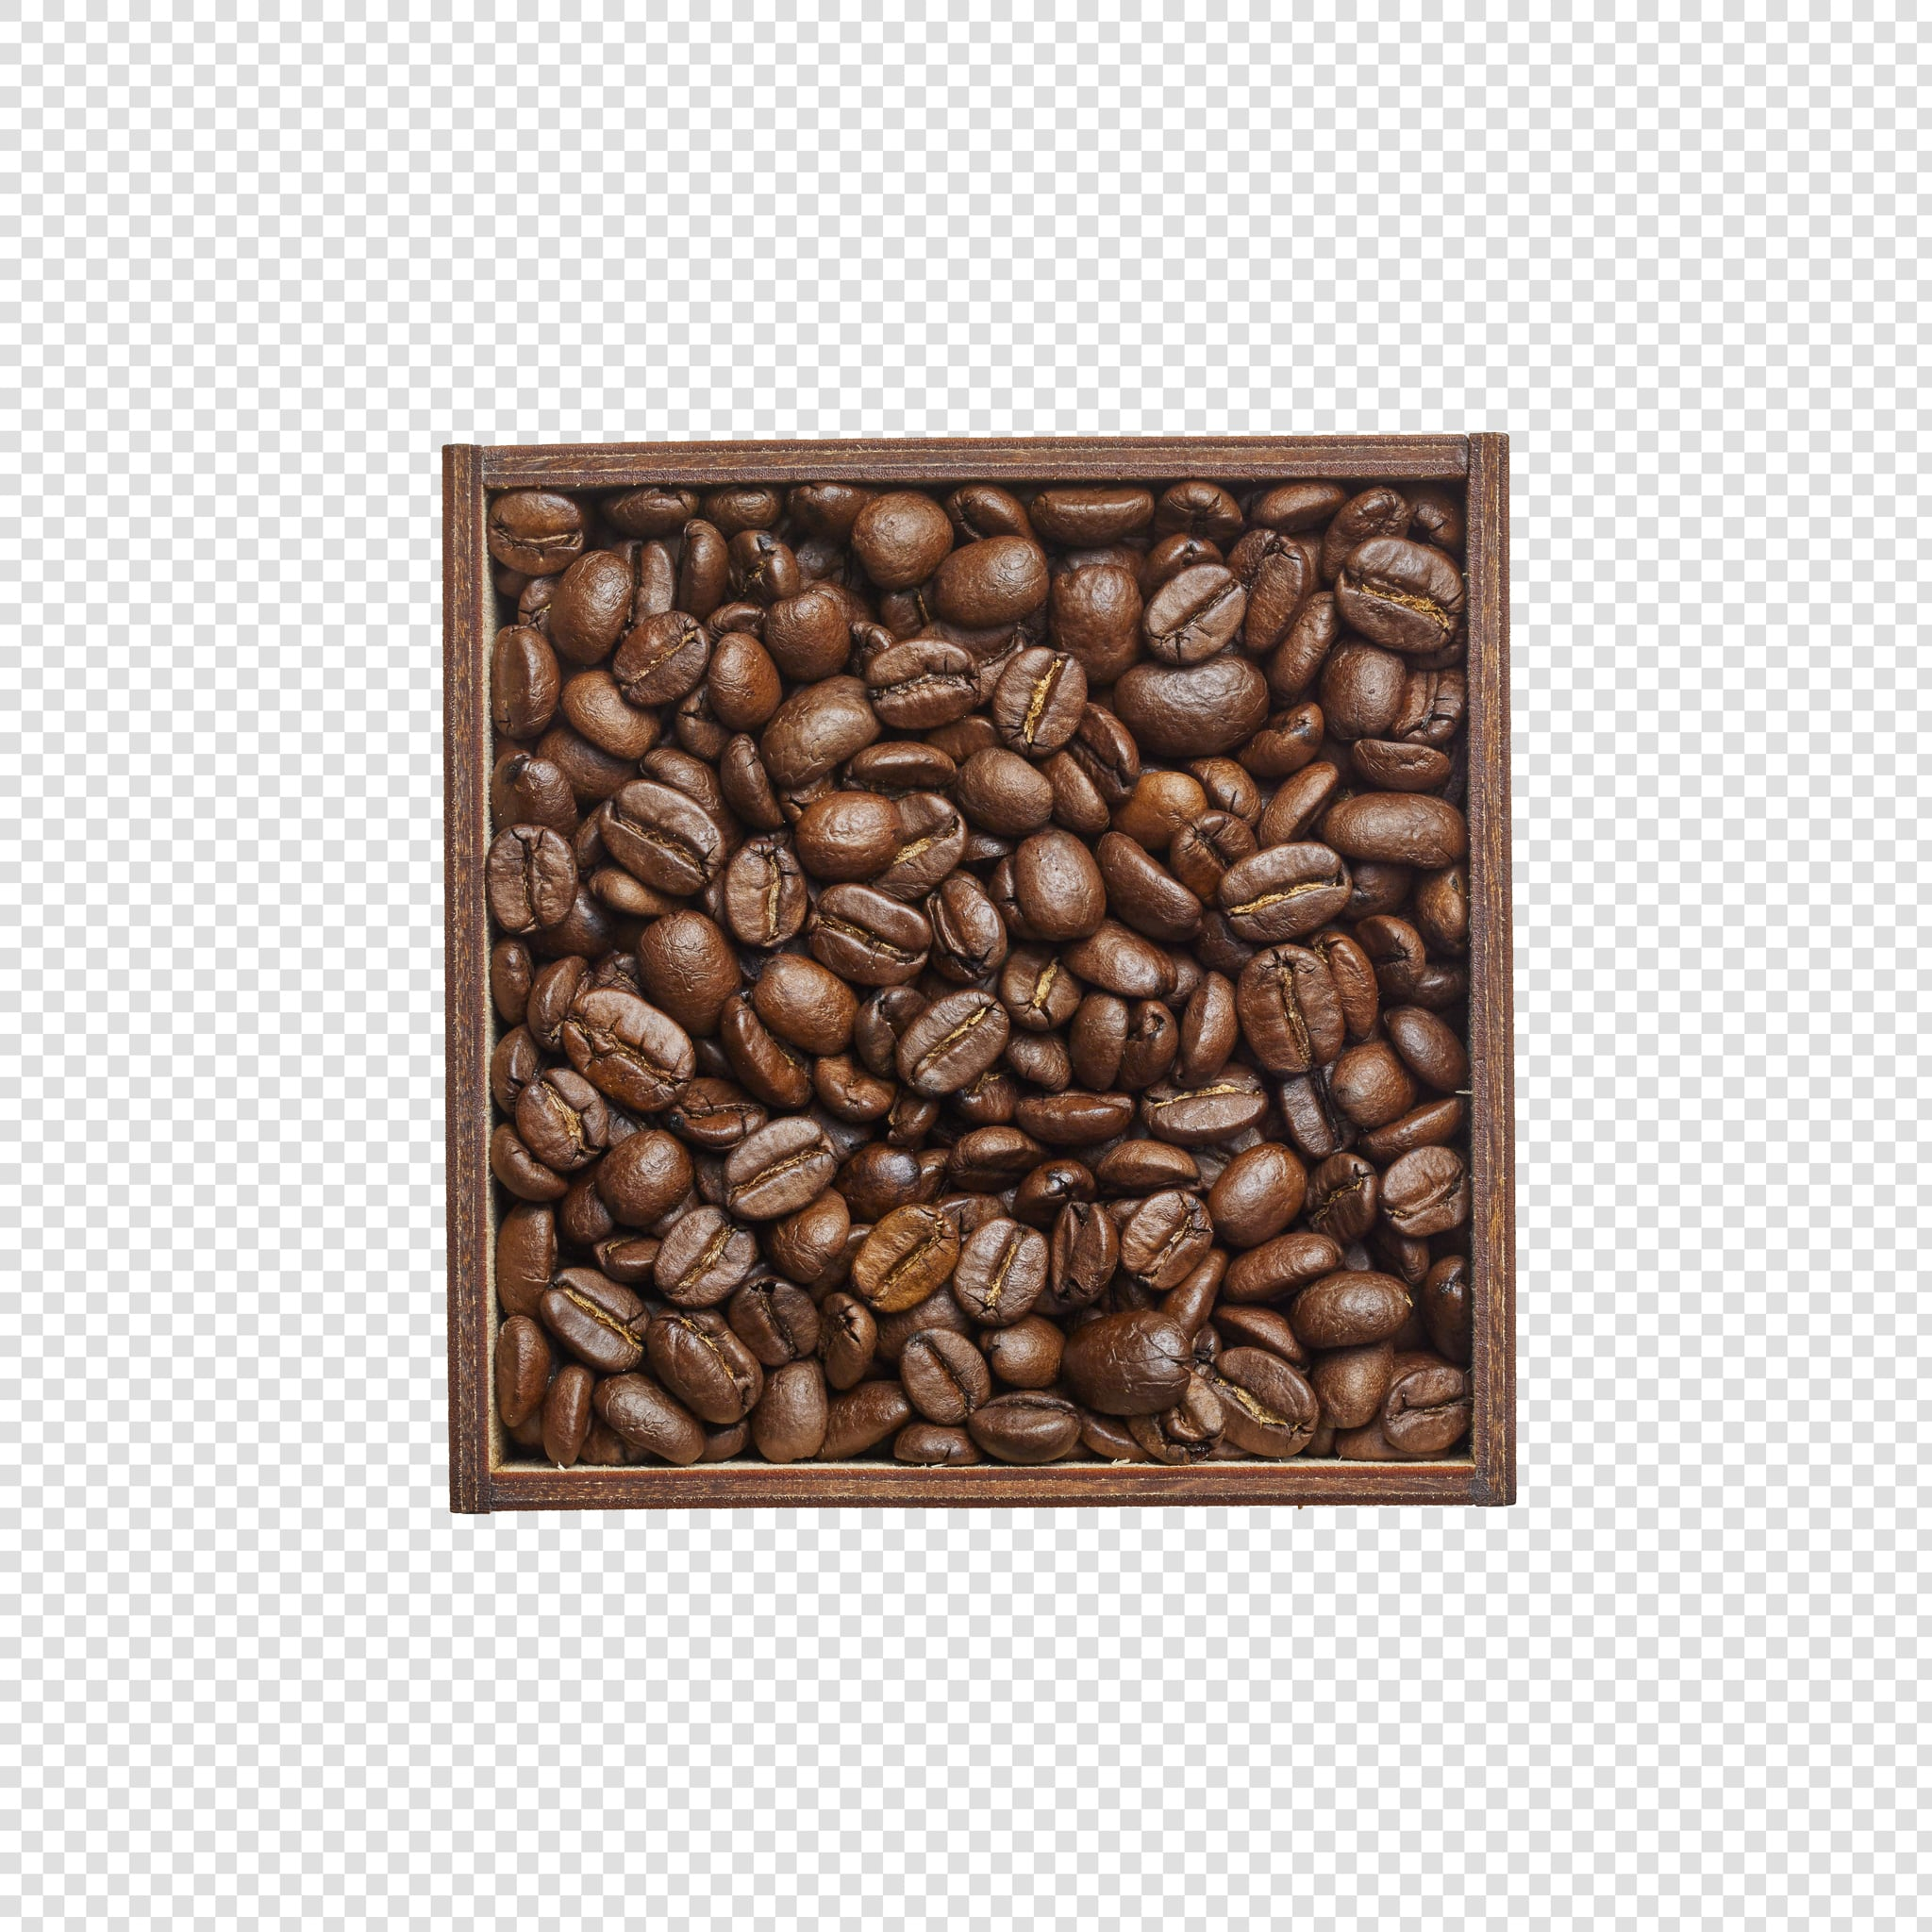 Clean Isolated PSD image of Coffee on transparent background with separated shadow